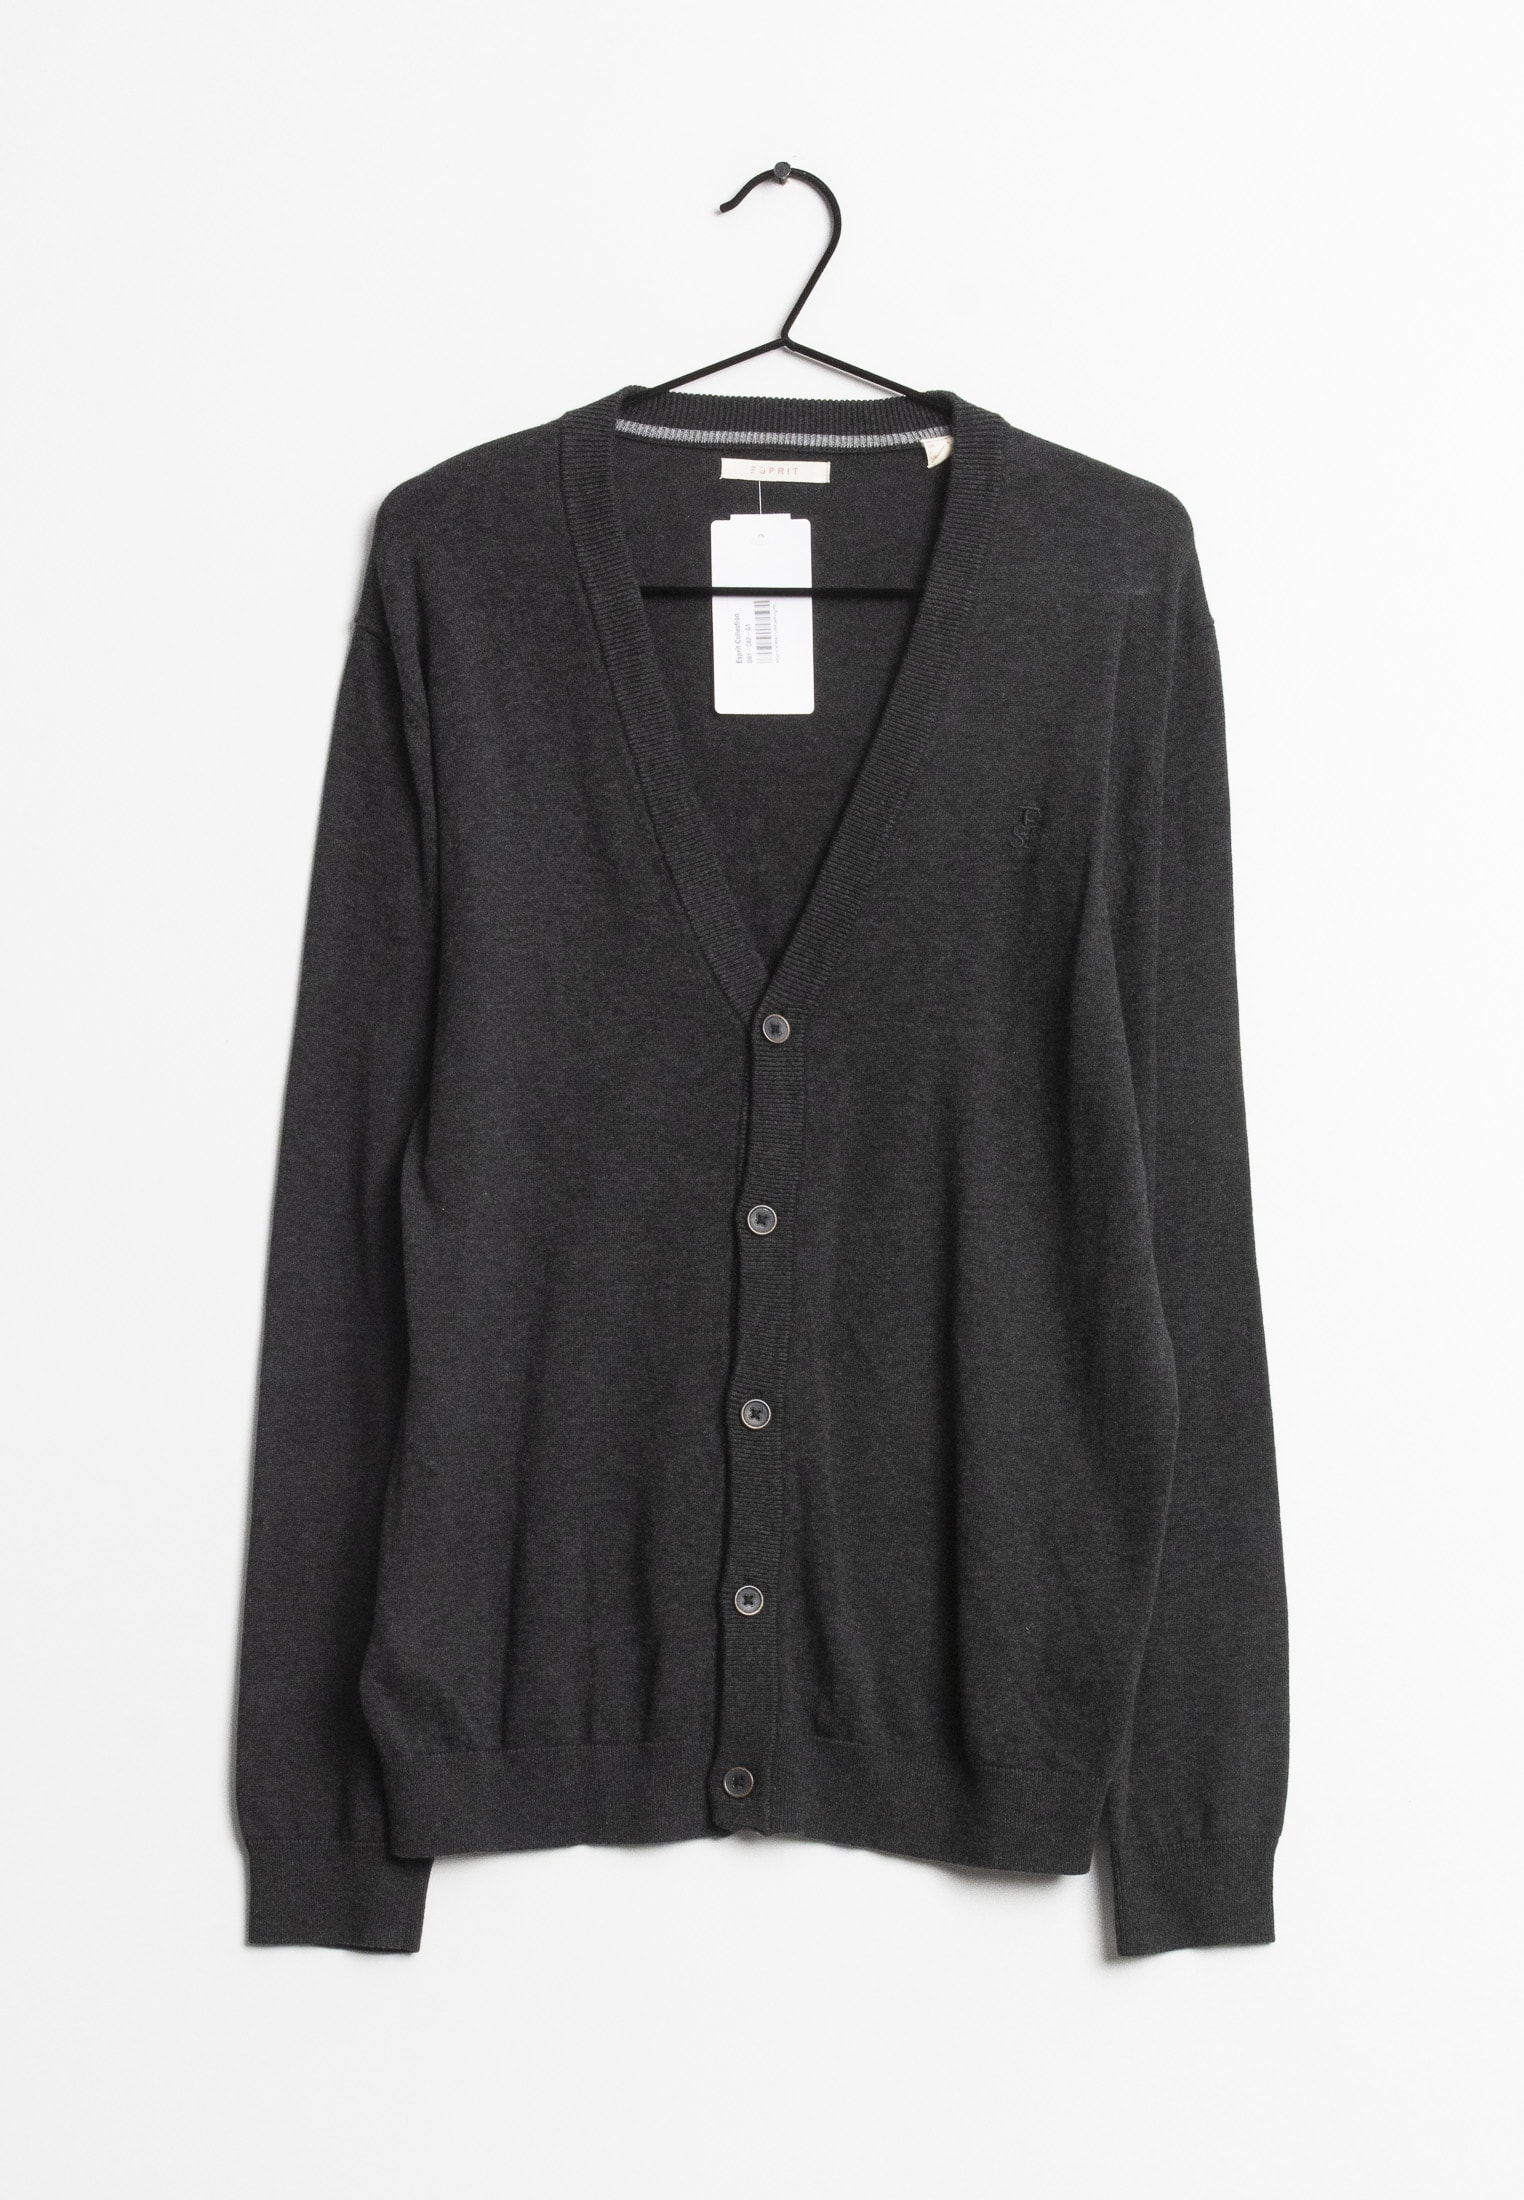 Esprit Collection cardigans, grå, L